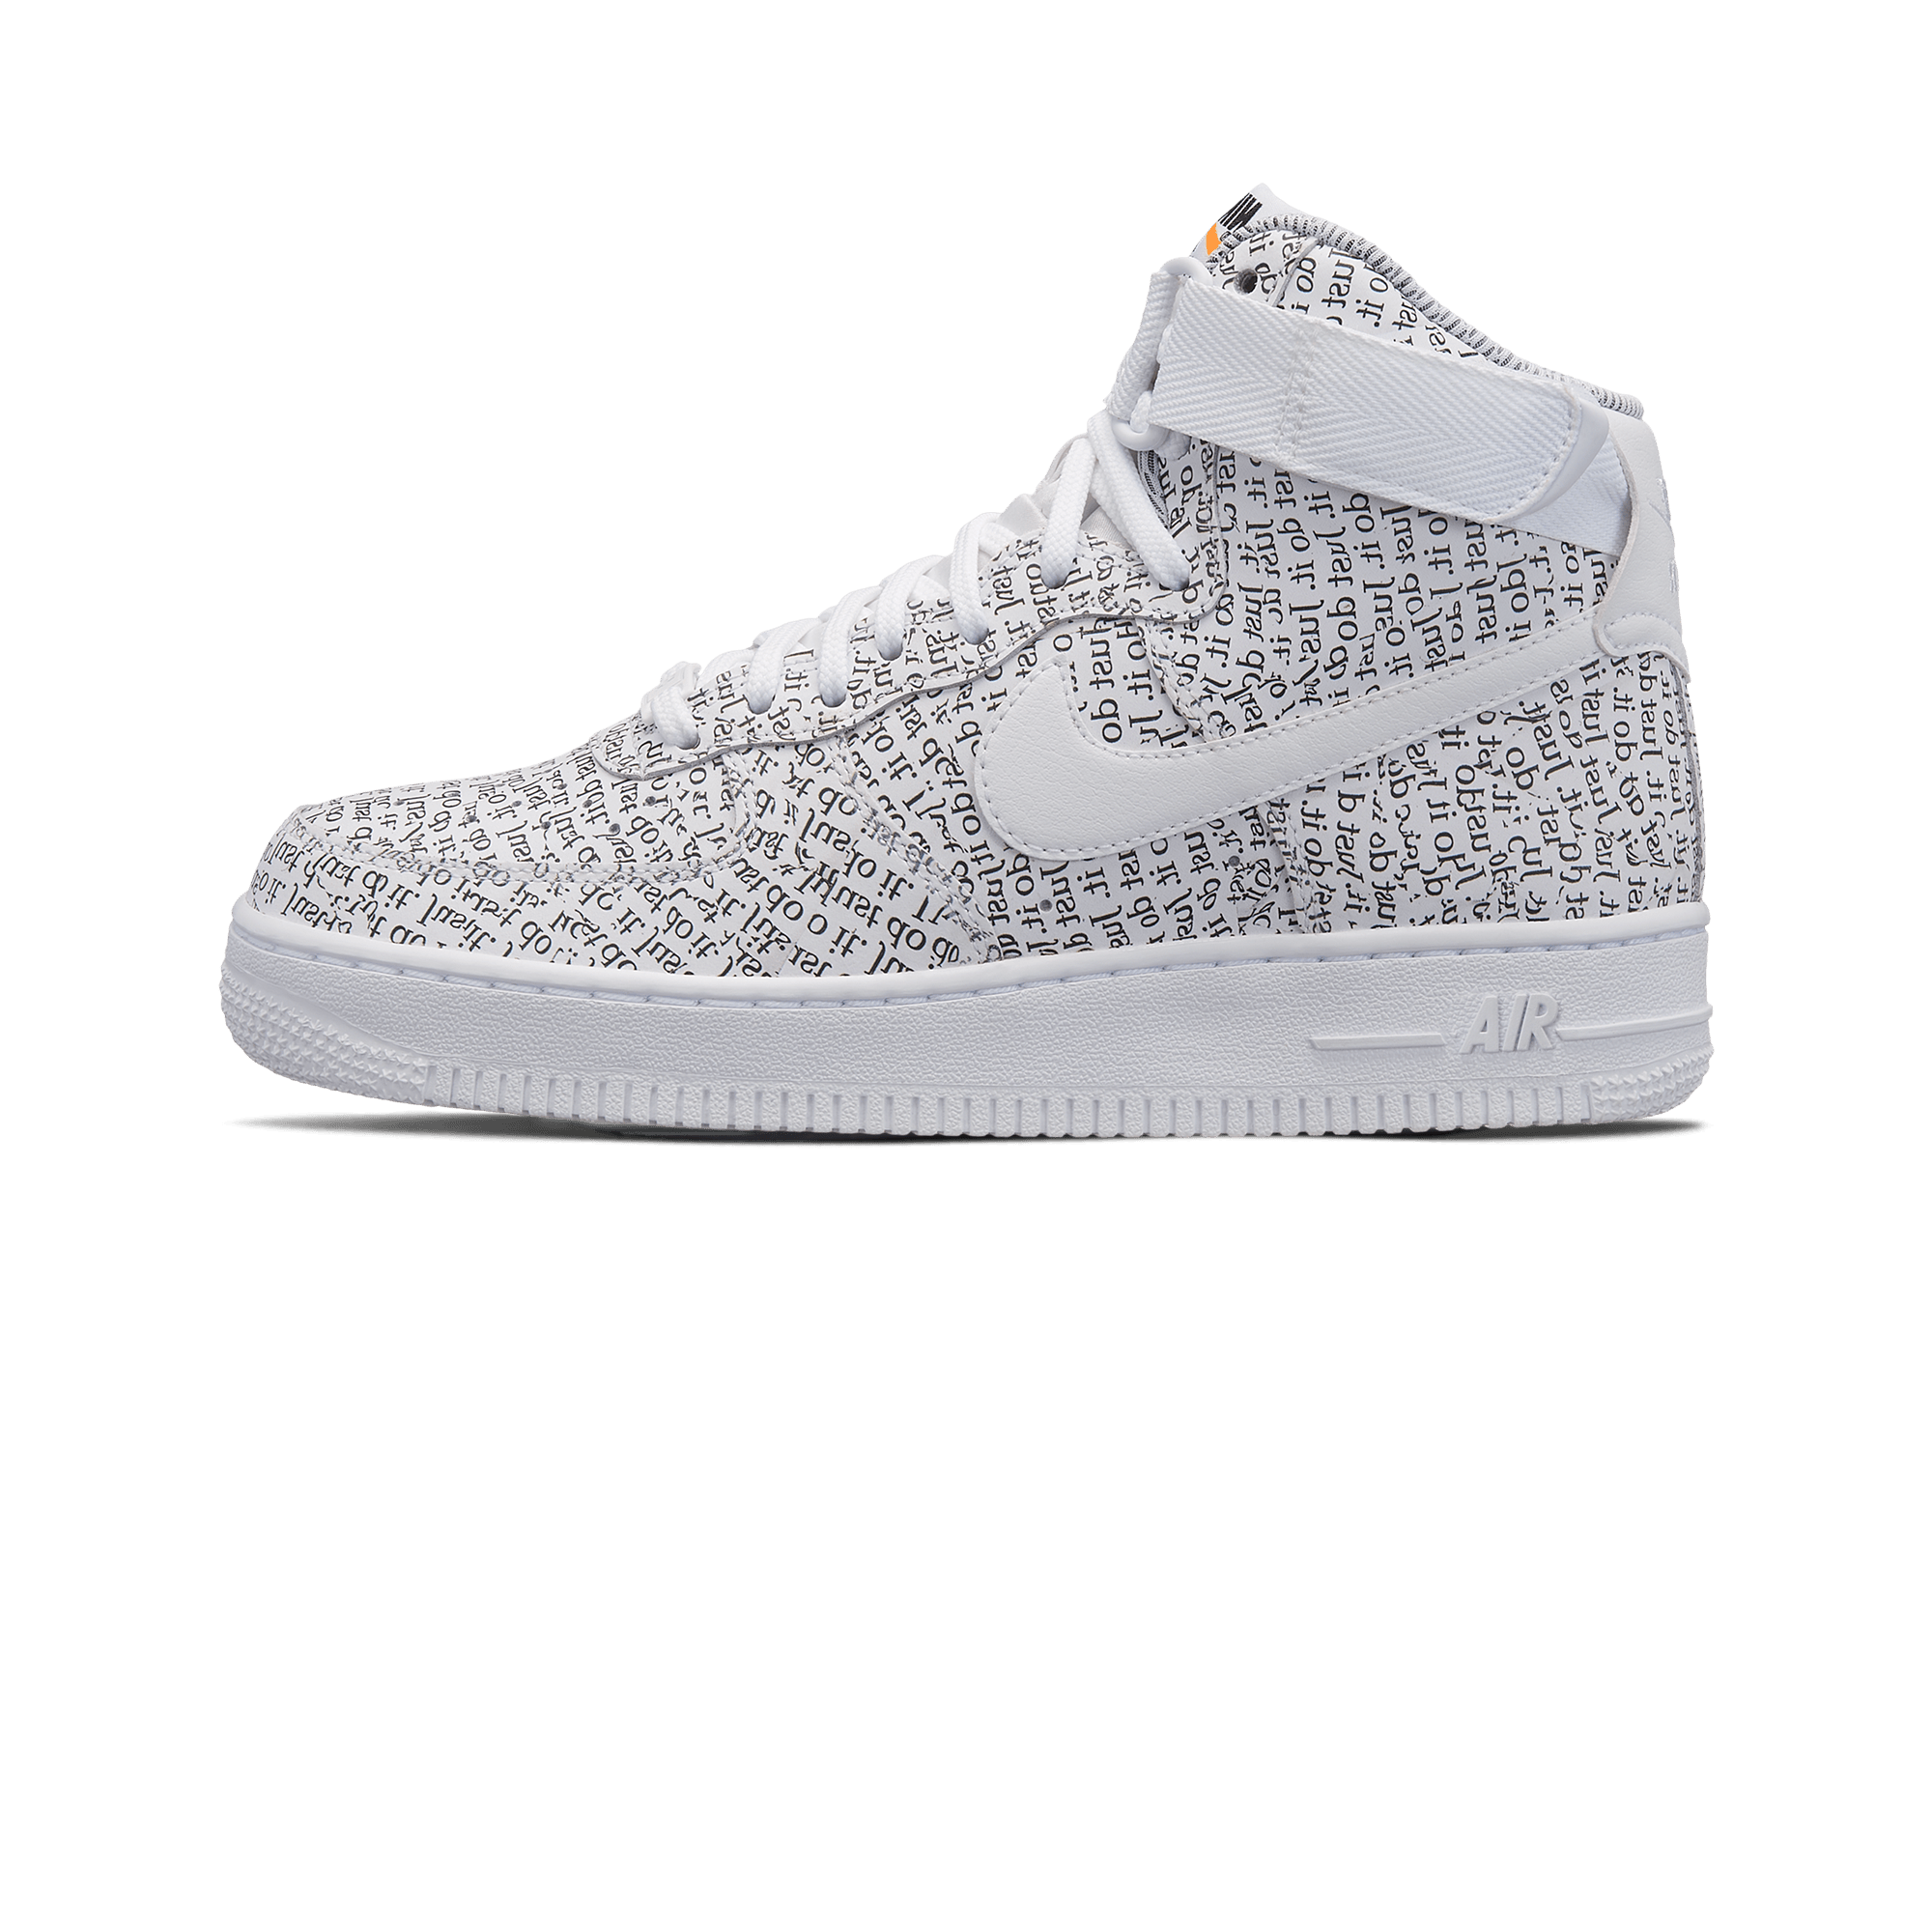 nike air force 1 high lx unisex